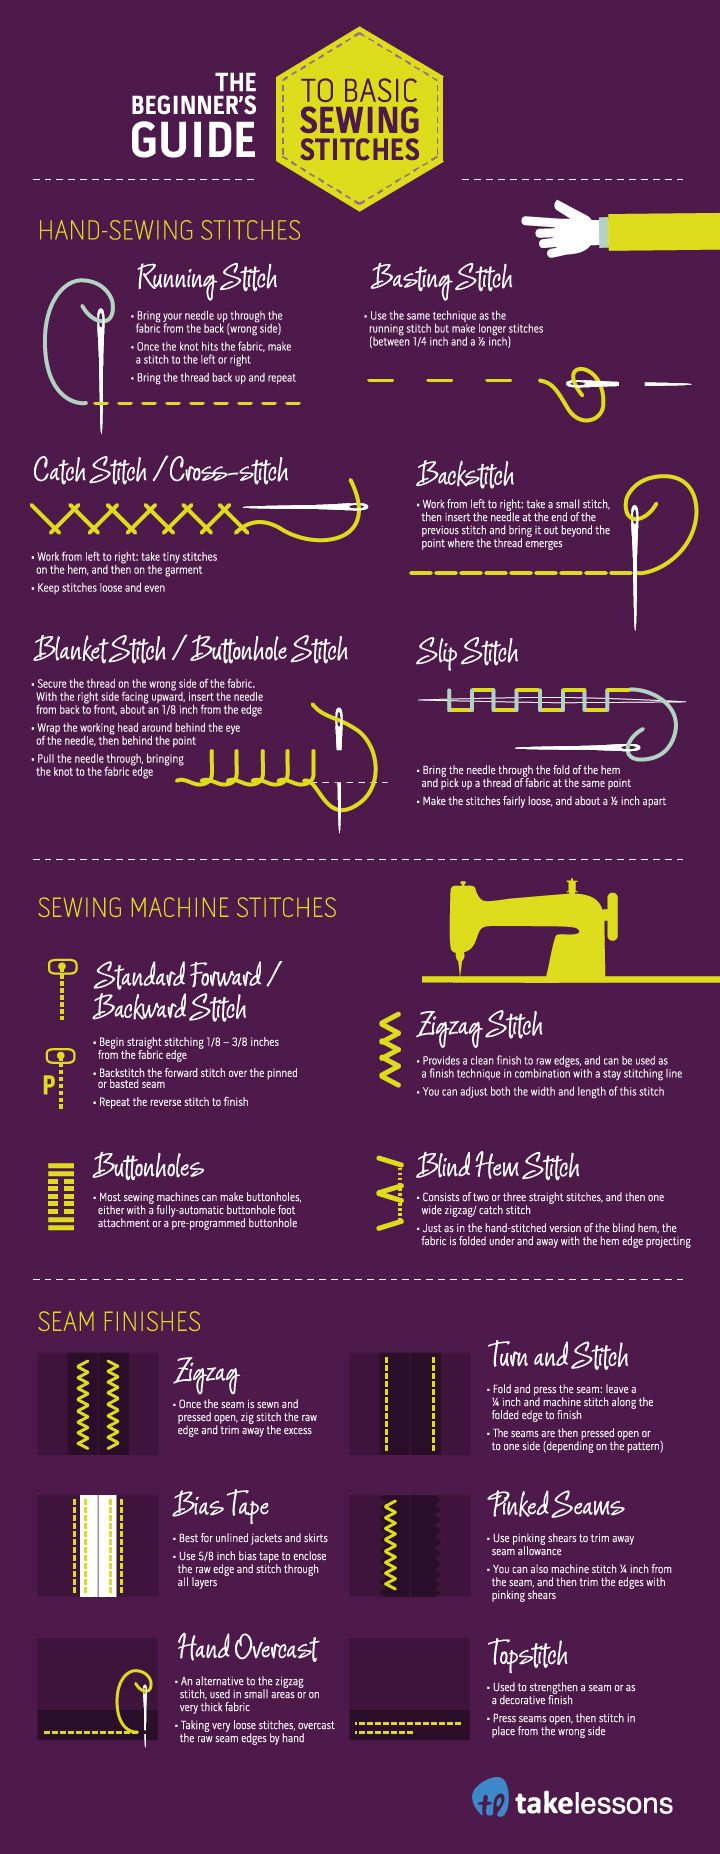 SIY (Sew-it-yourself): Everything You Need to Know about Basic Sewing Stitches – T